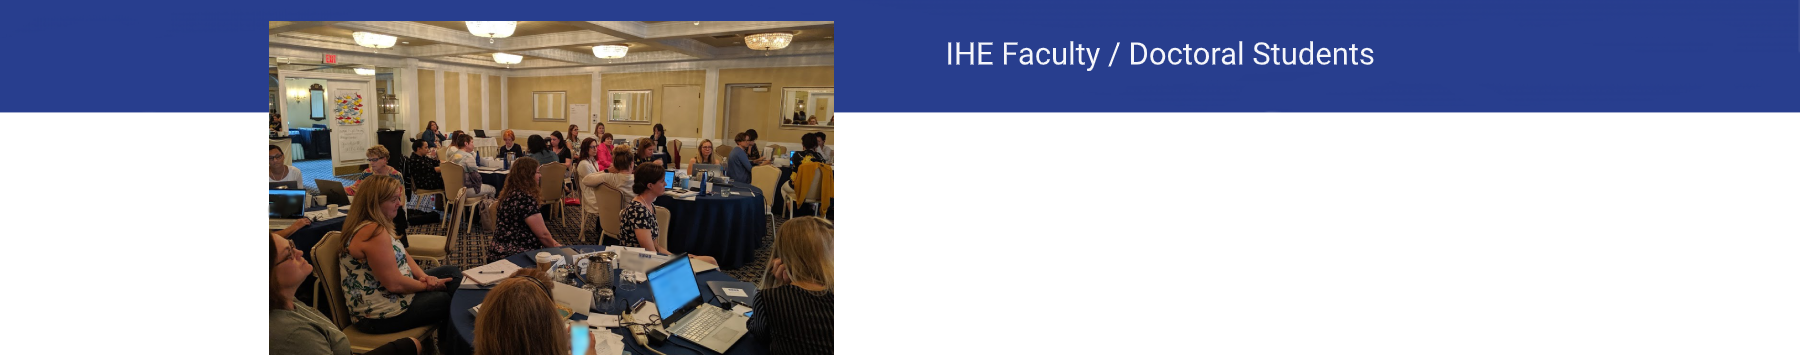 IHE Faculty Header